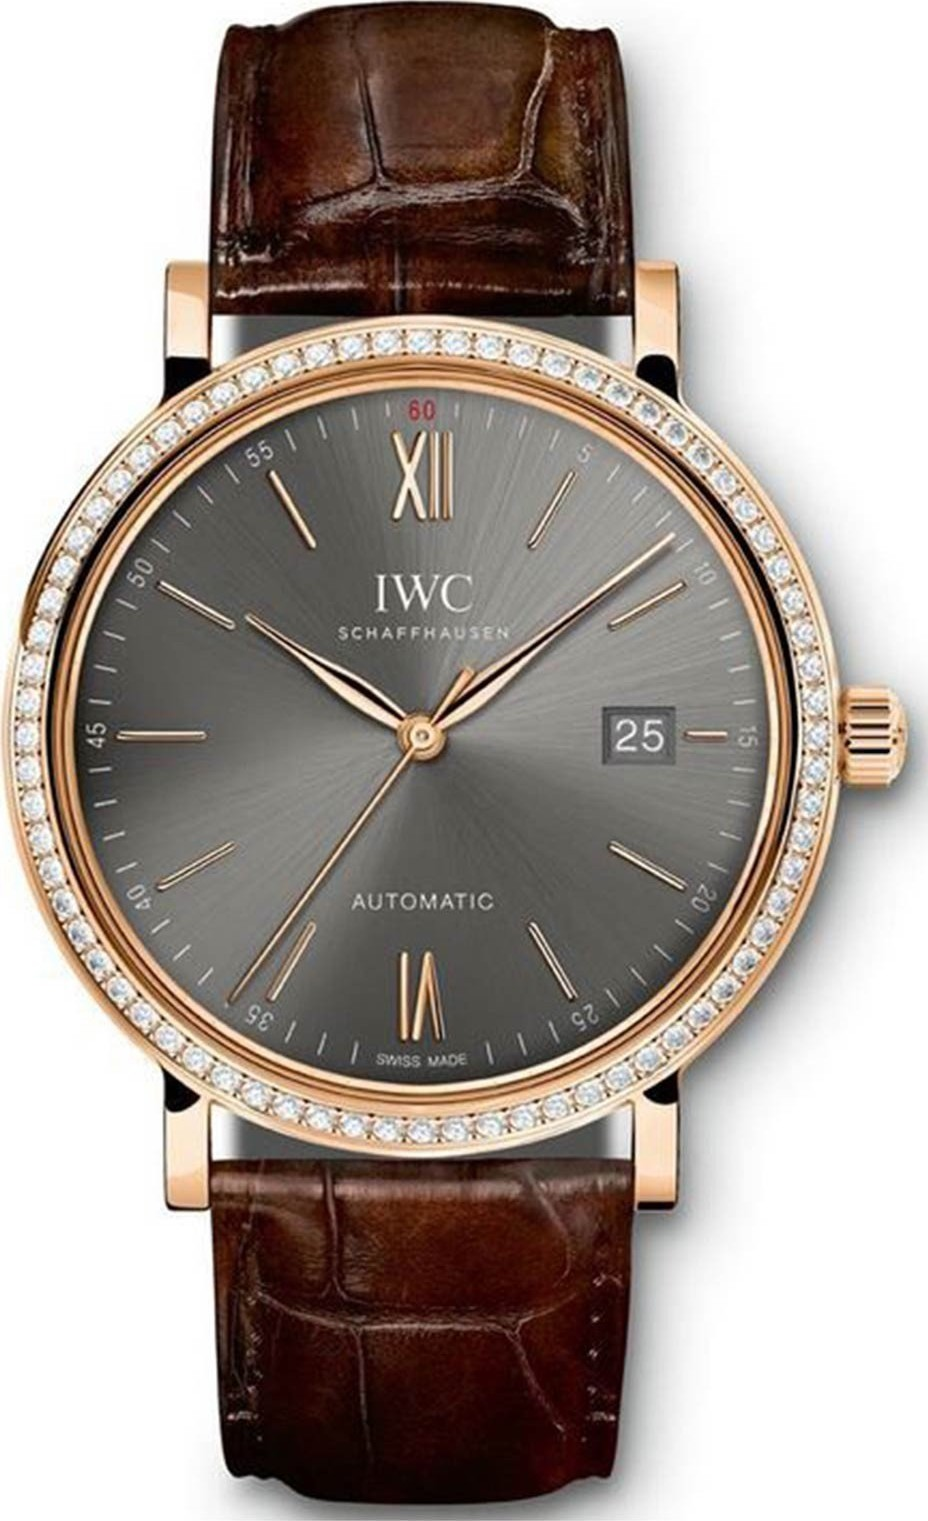 IWC Portofino IW356516 Watch 40mm